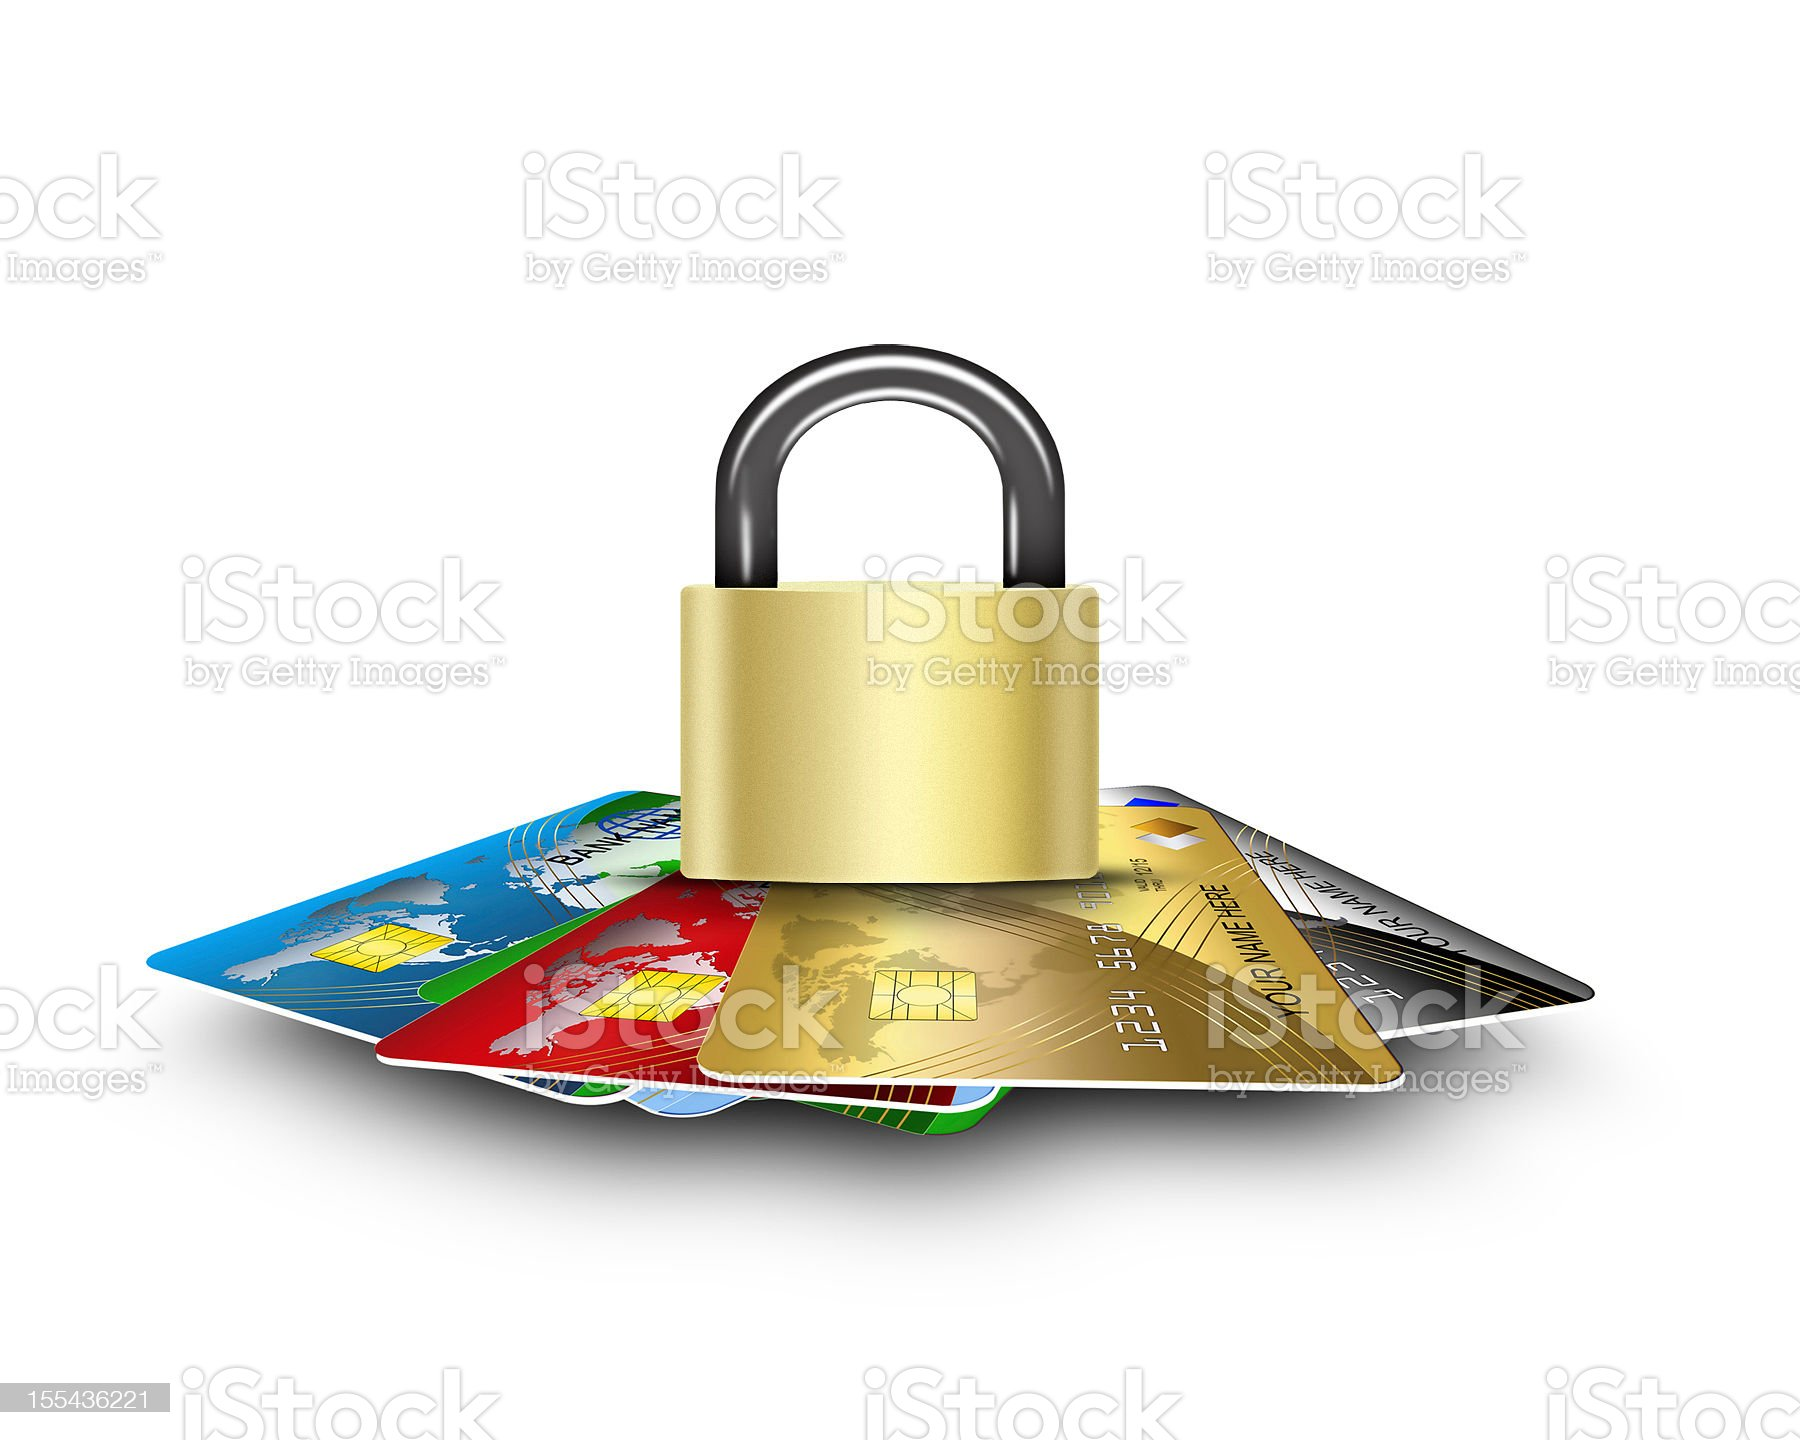 cards security royalty-free stock photo